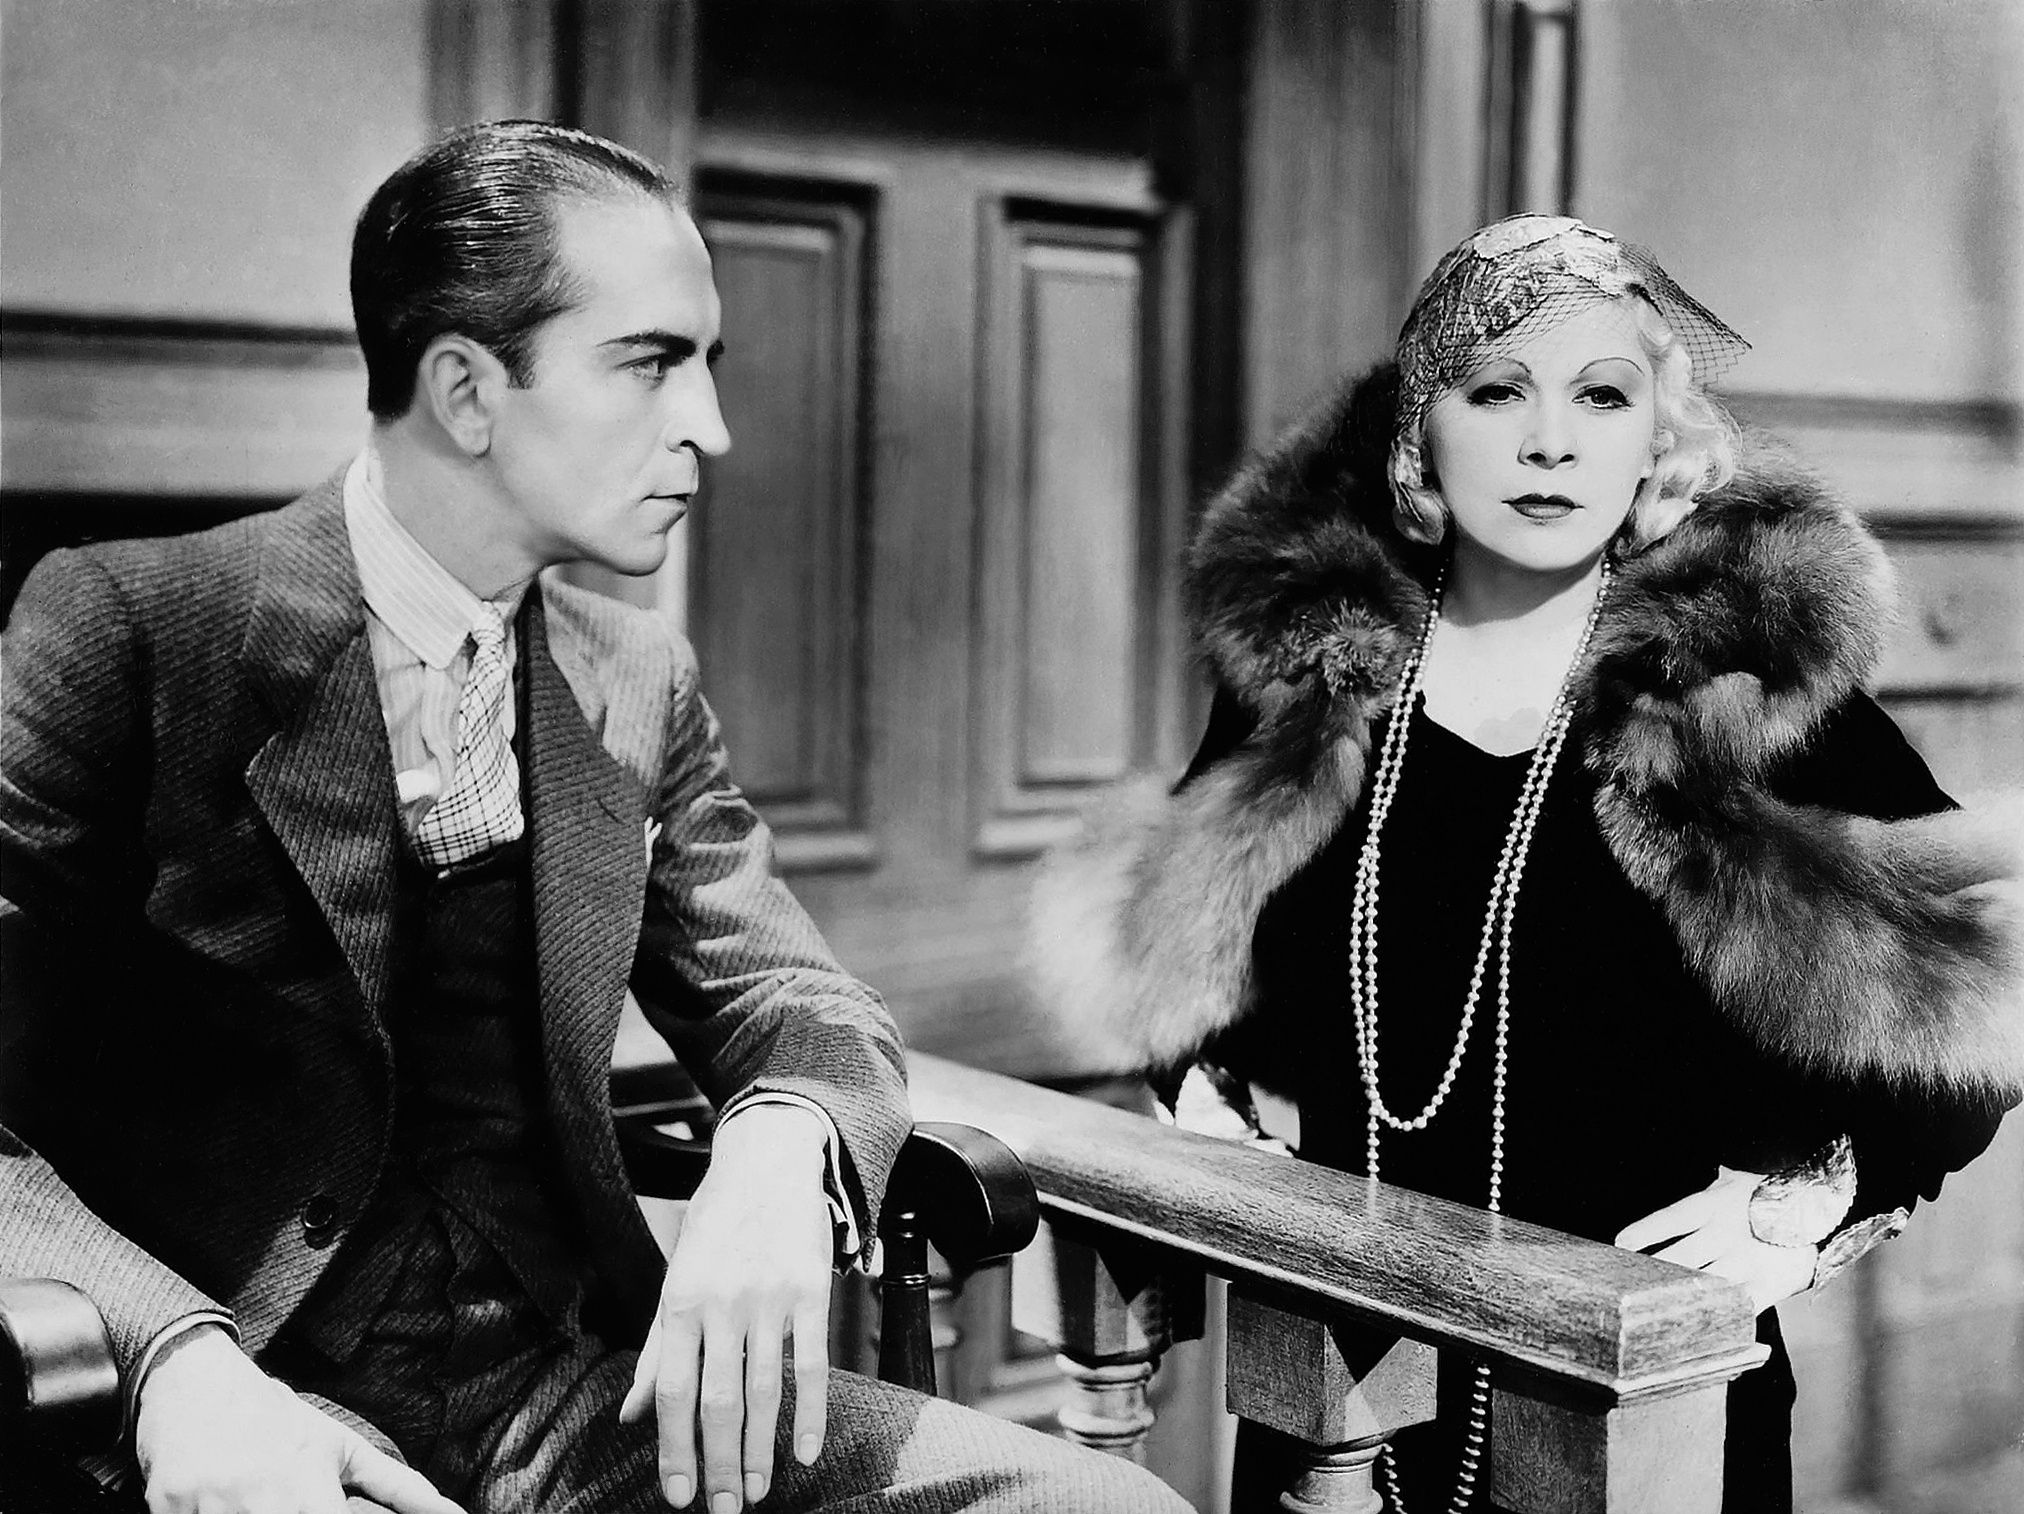 Mae west in im no angel directed by wesley ruggles 1933 mae west in im no angel directed by wesley ruggles 1933 biocorpaavc